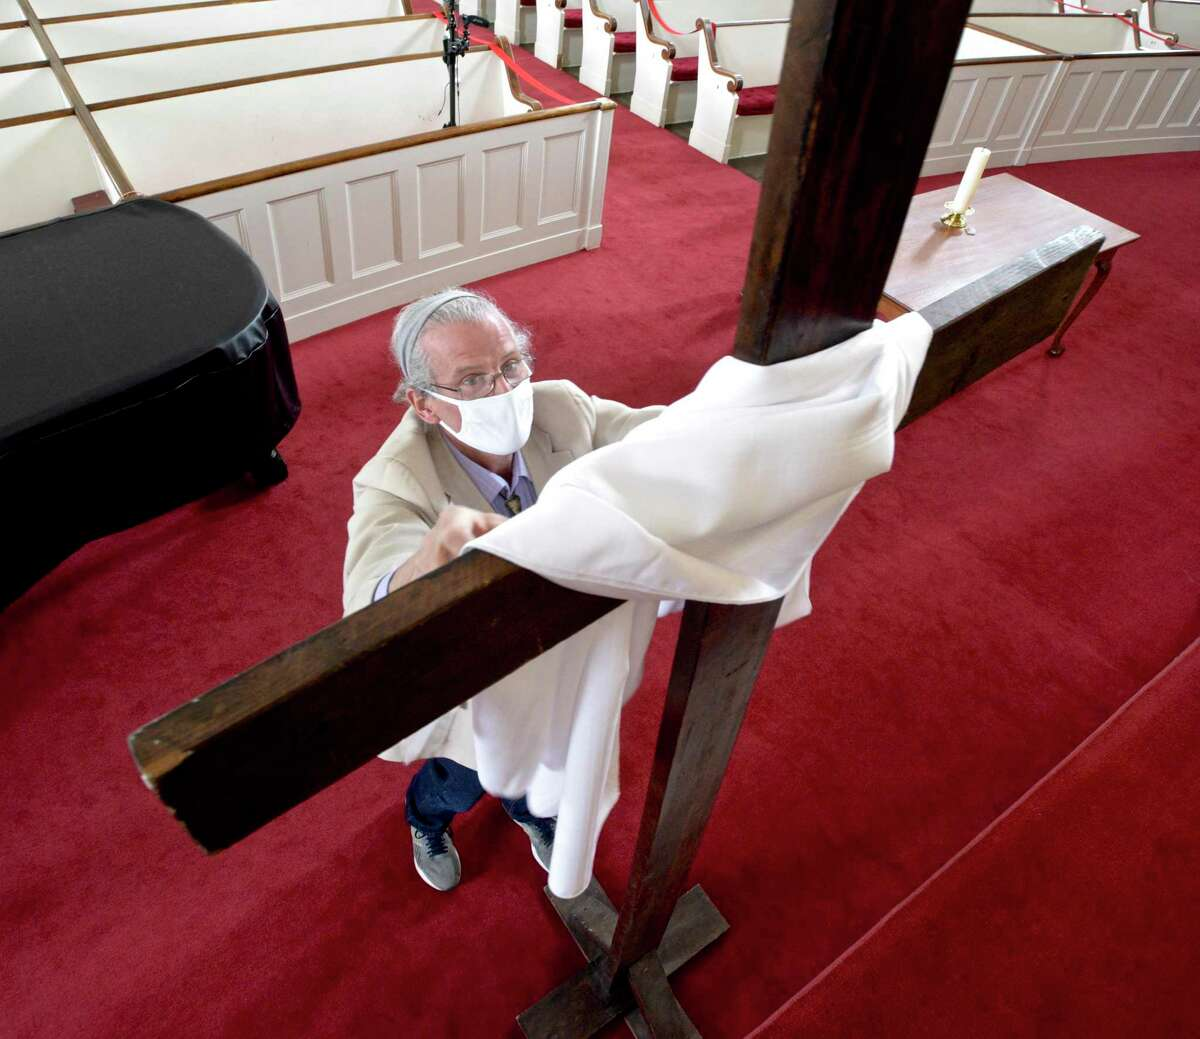 Gregory Pings, of Danbury, replaces a black cloth hung on the cross with a white one in the First Congregational Church, on Deer Hill Avenue. The church had started preparing for Easter. The sanctuary of the church will be open on Easter for the first time since last fall. Friday, April 2, 2021, in Danbury, Conn.